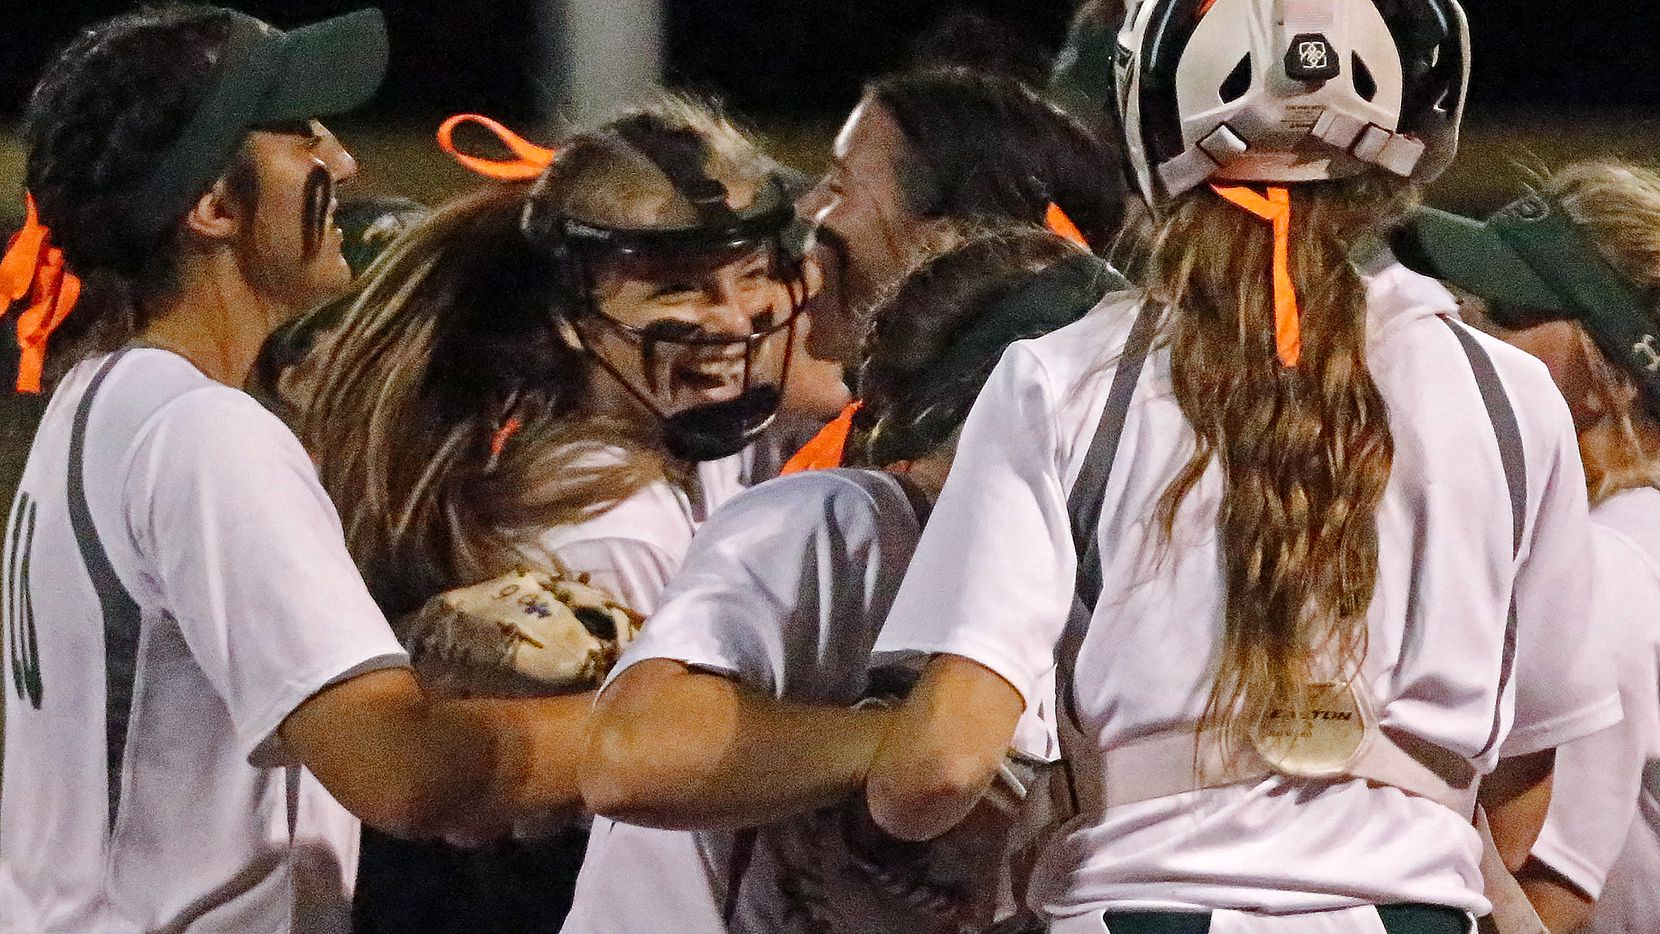 Prosper pitcher Elissa Griffin (16) is mobbed by team mates after winning their series as Prosper High School hosted Ft. Worth Boswell High School in game two of a best of three series 6A Region I semifinal softball game in Prosper on Thursday night, May 20, 2021.